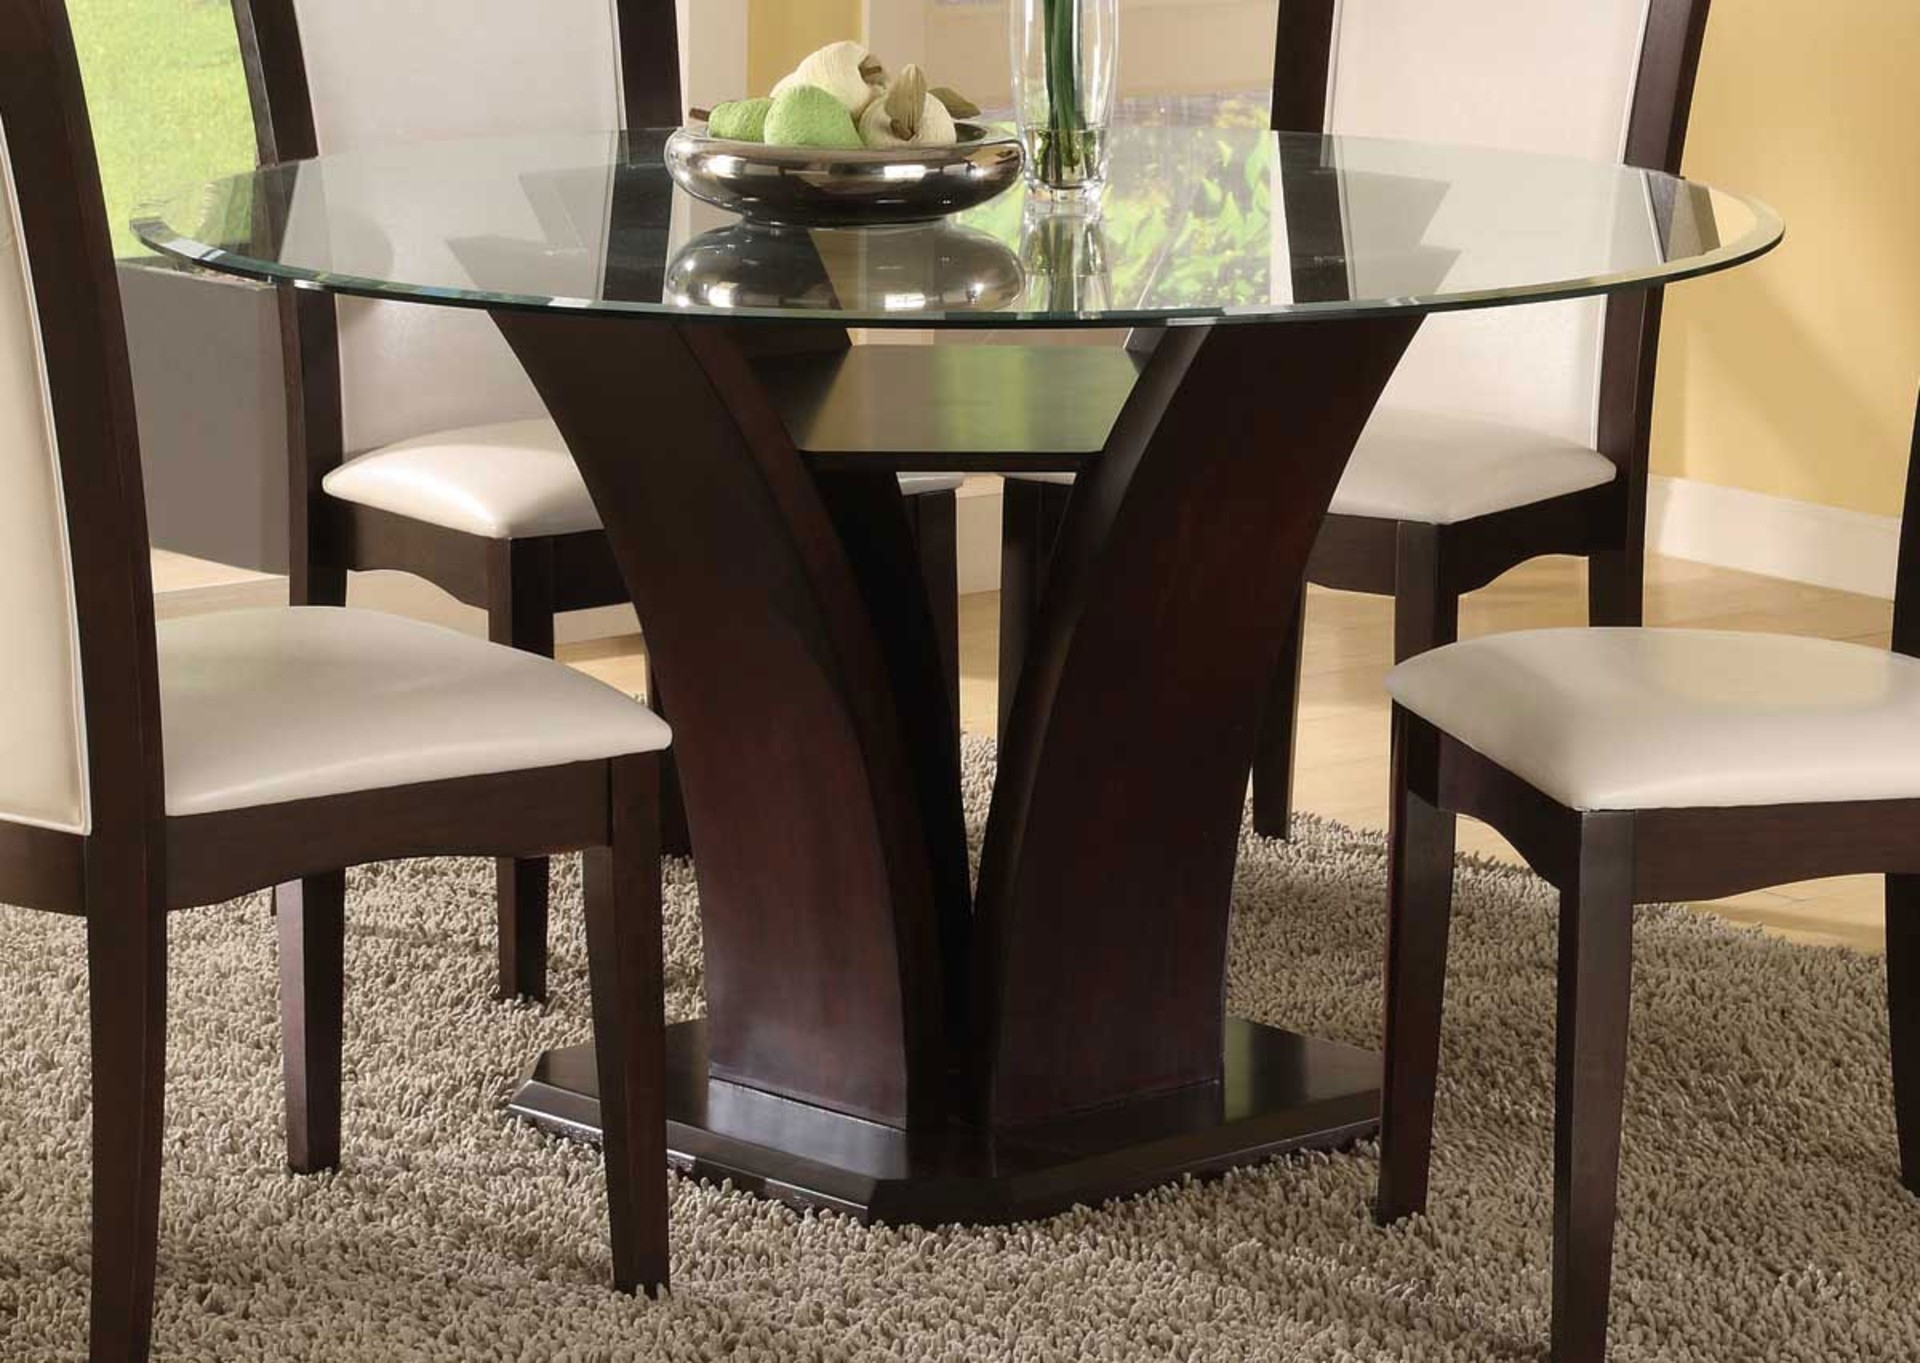 Latest Round Glass Dining Table With Dark Brown Wooden Base On Mocha Fur Pertaining To Dark Brown Wood Dining Tables (View 14 of 25)